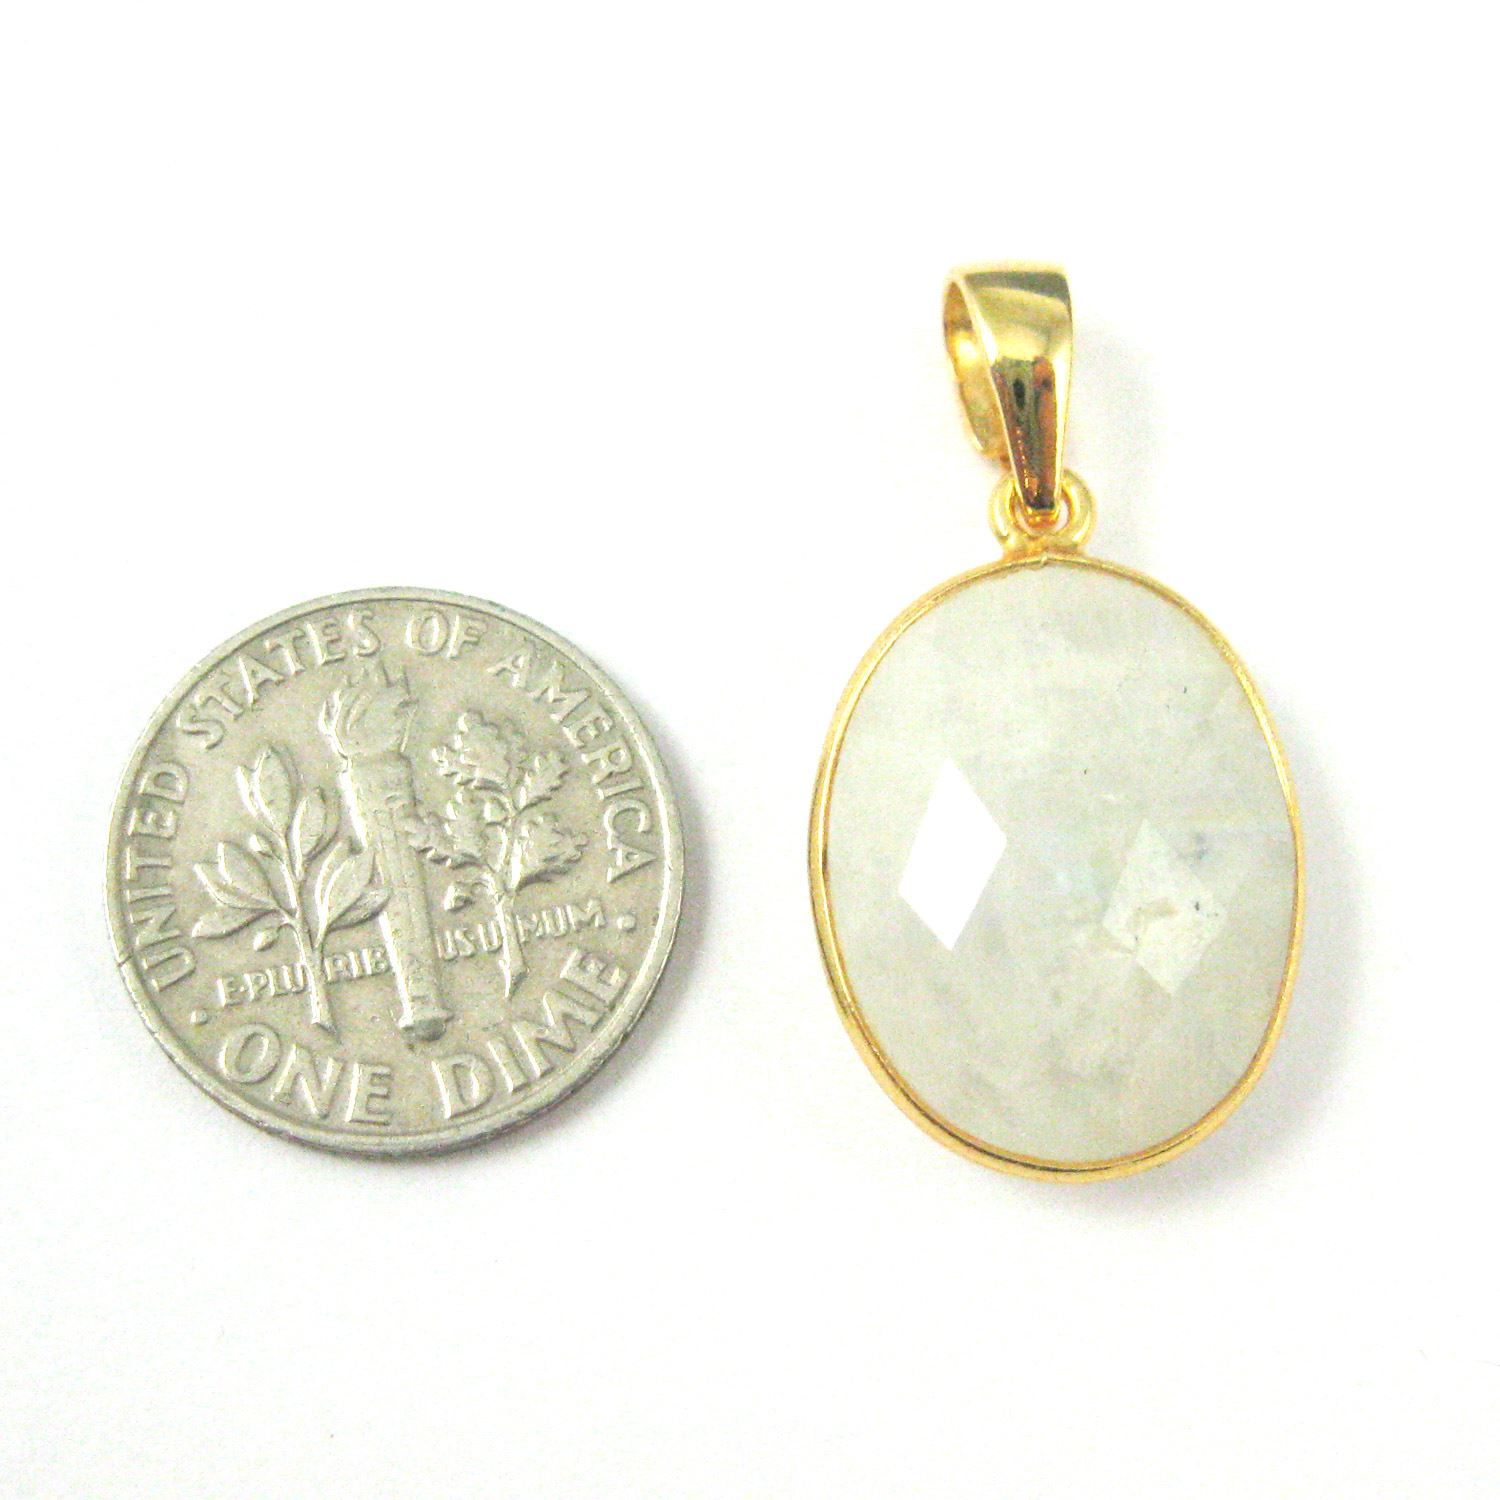 Bezel Gemstone Pendant with Bail - Gold plated Sterling Silver Oval Gem Pendant - Ready for Necklace - 28mm - Moonstone